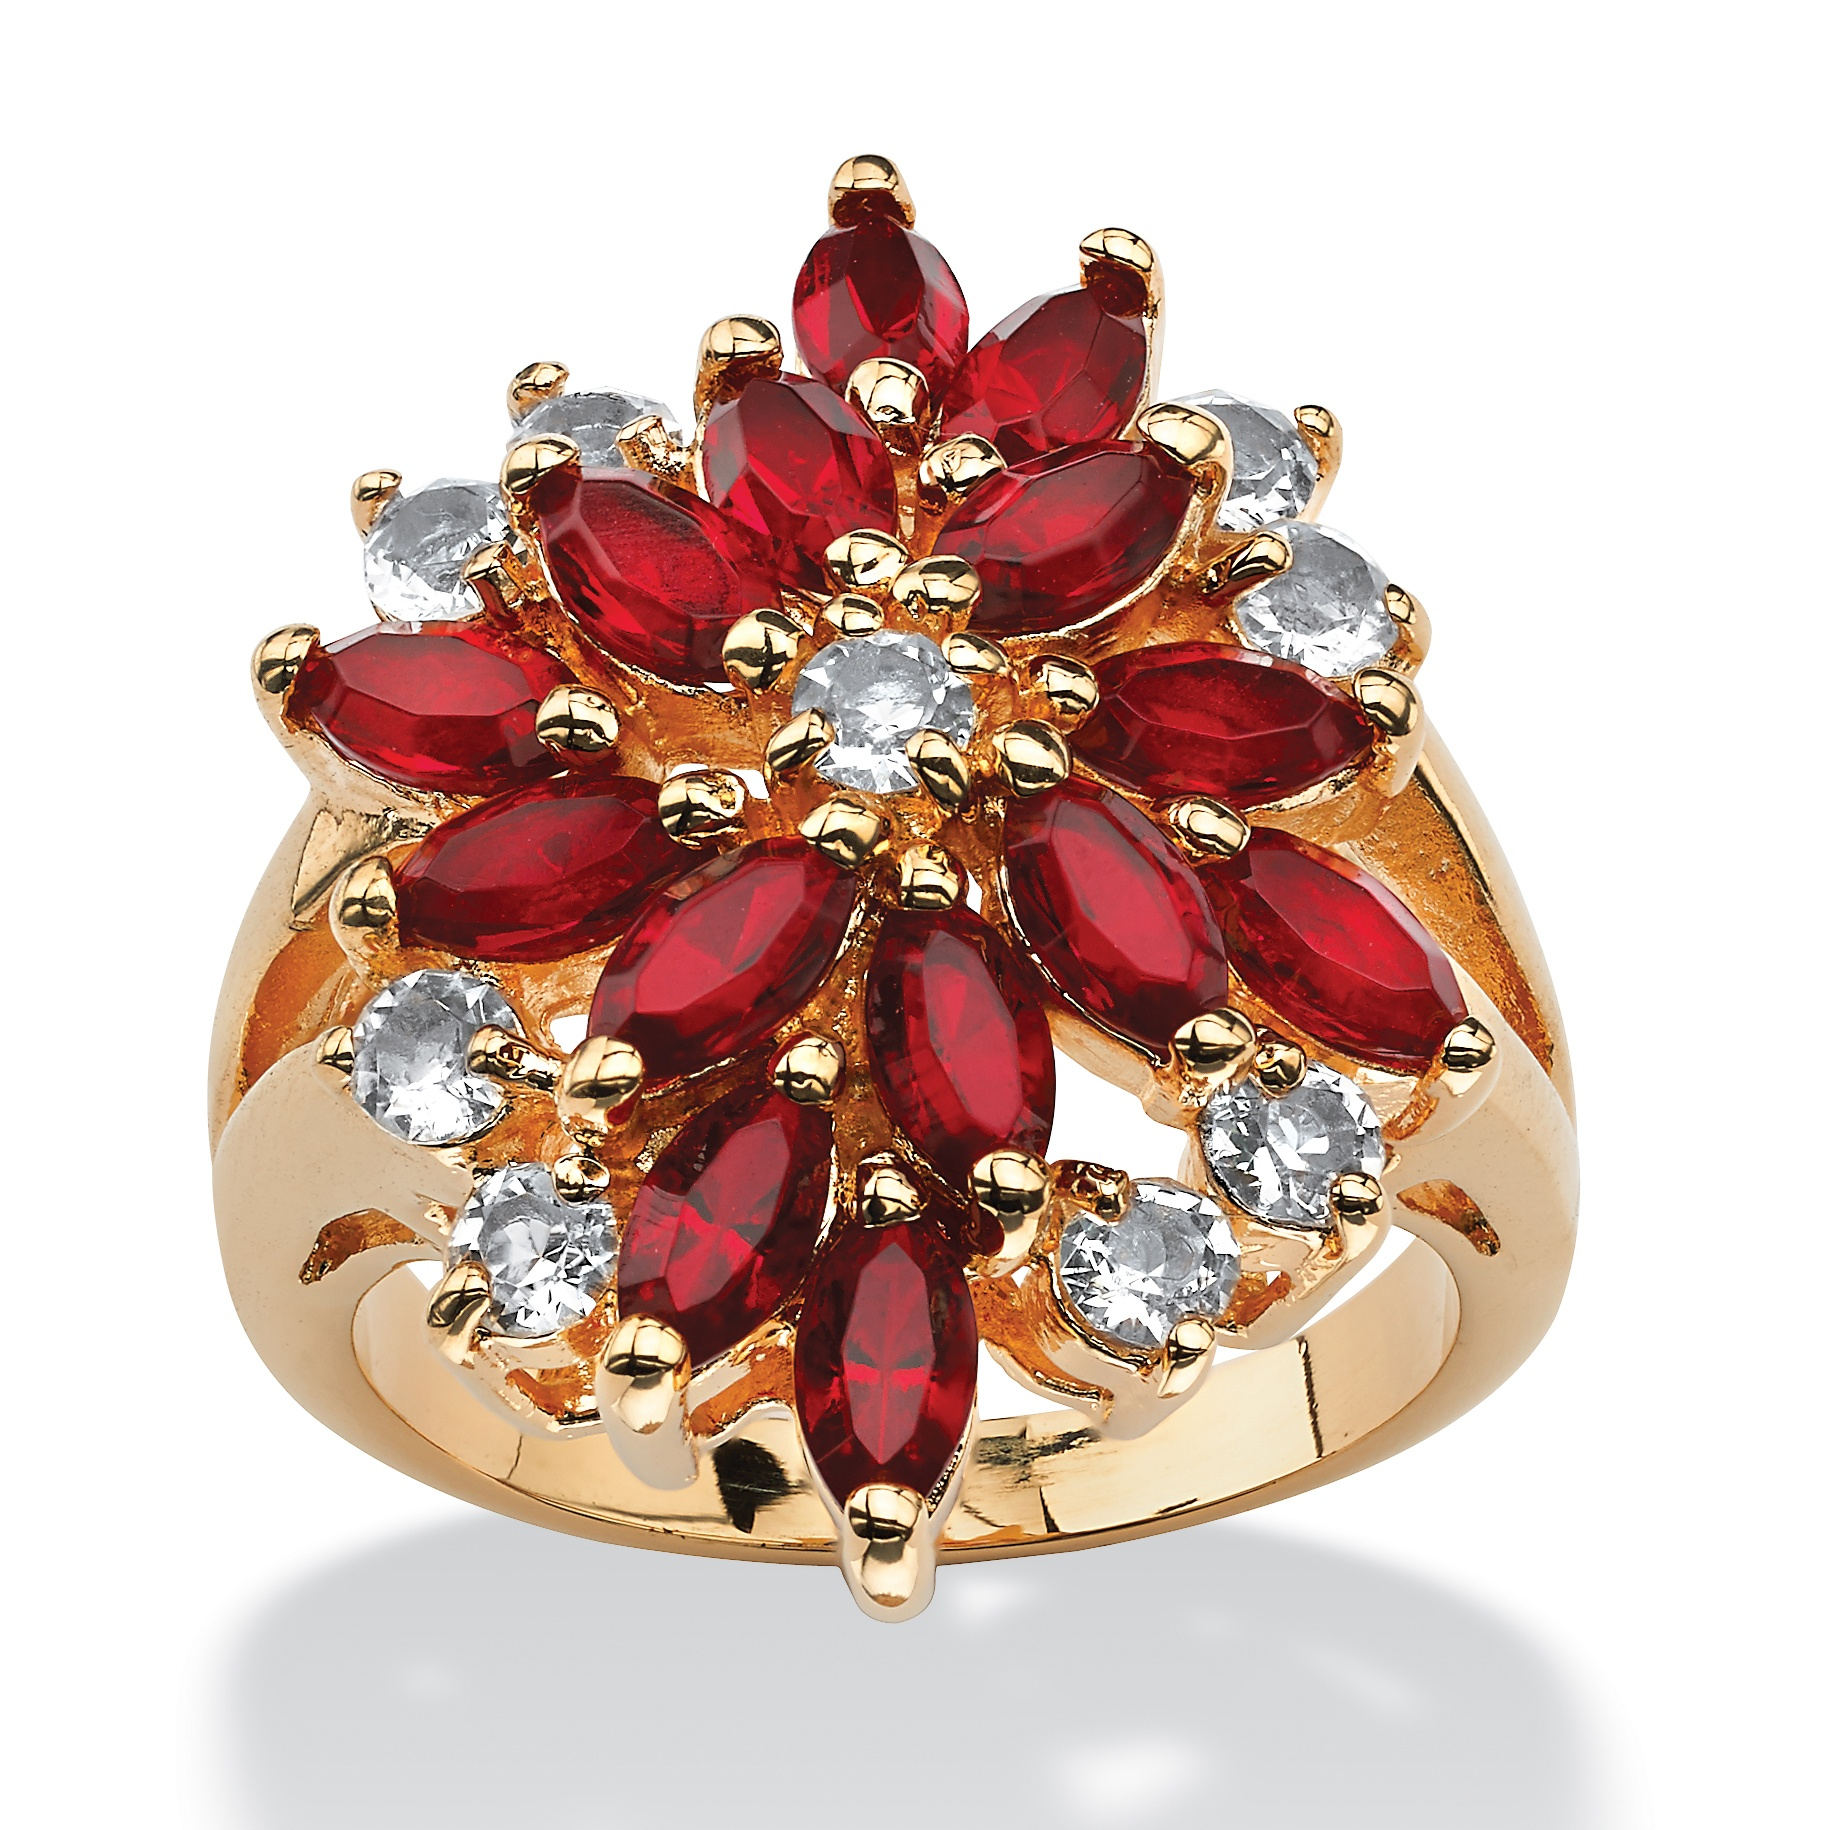 Marquise Cut Simulated Red Ruby Floral Cluster Cocktail